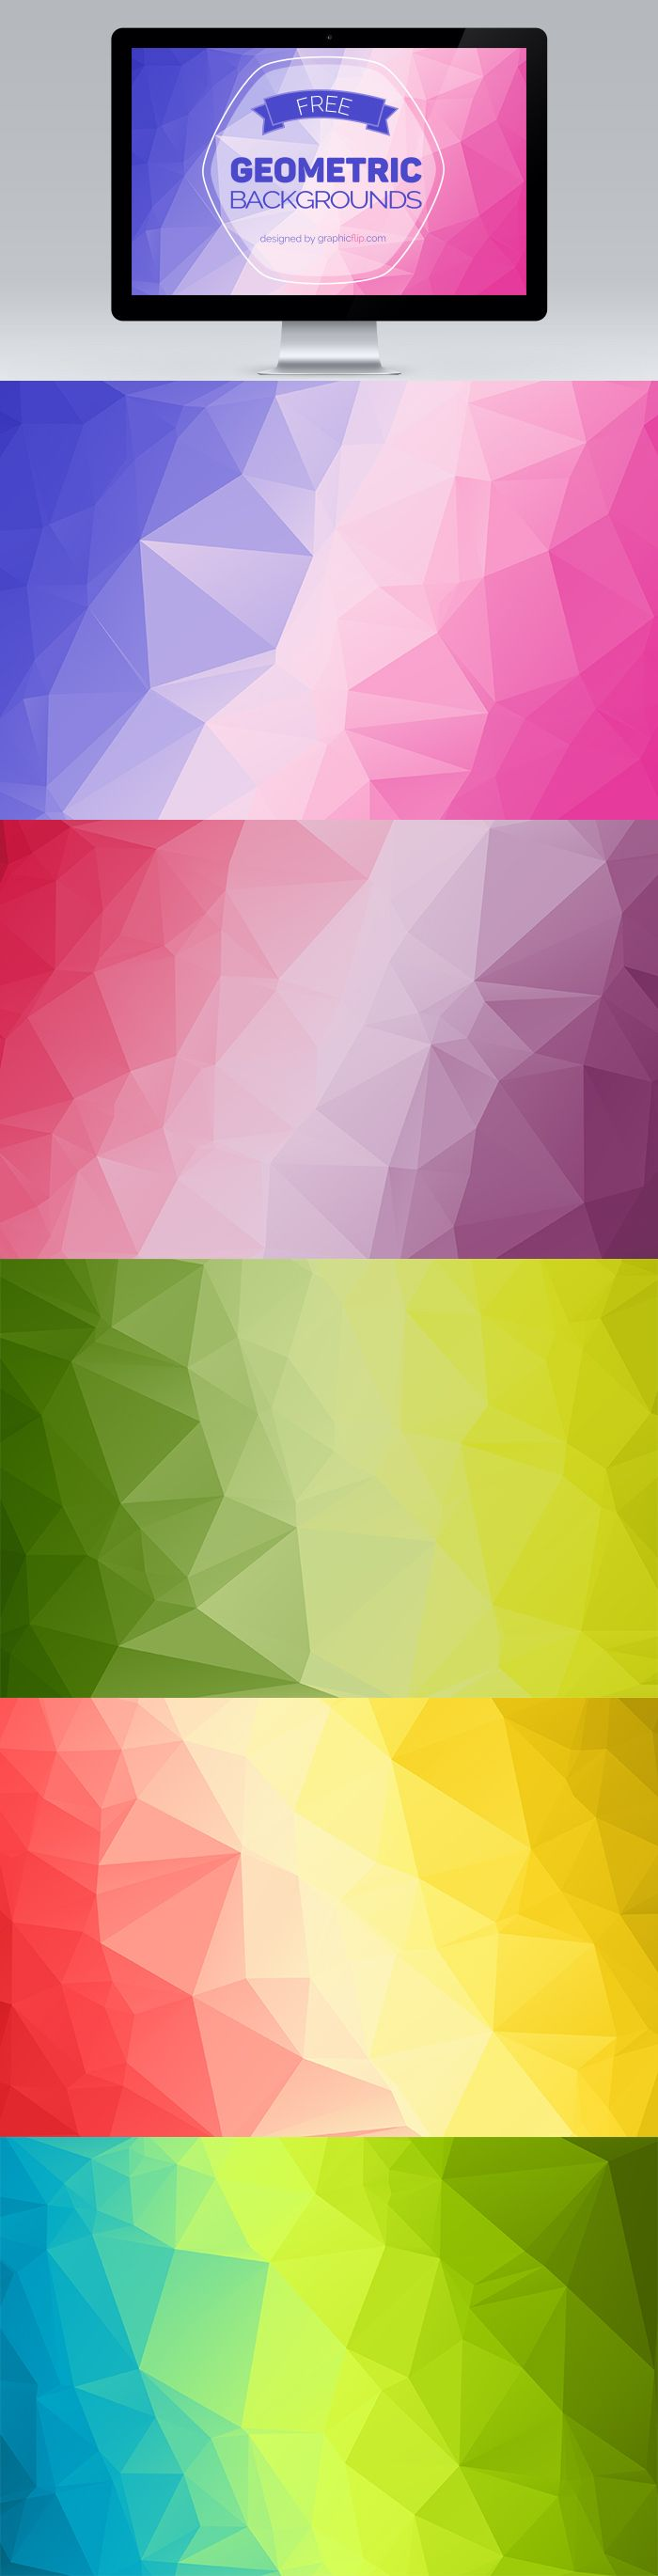 1000 ideas about geometric background on pinterest - Geometric wallpaper colorful ...